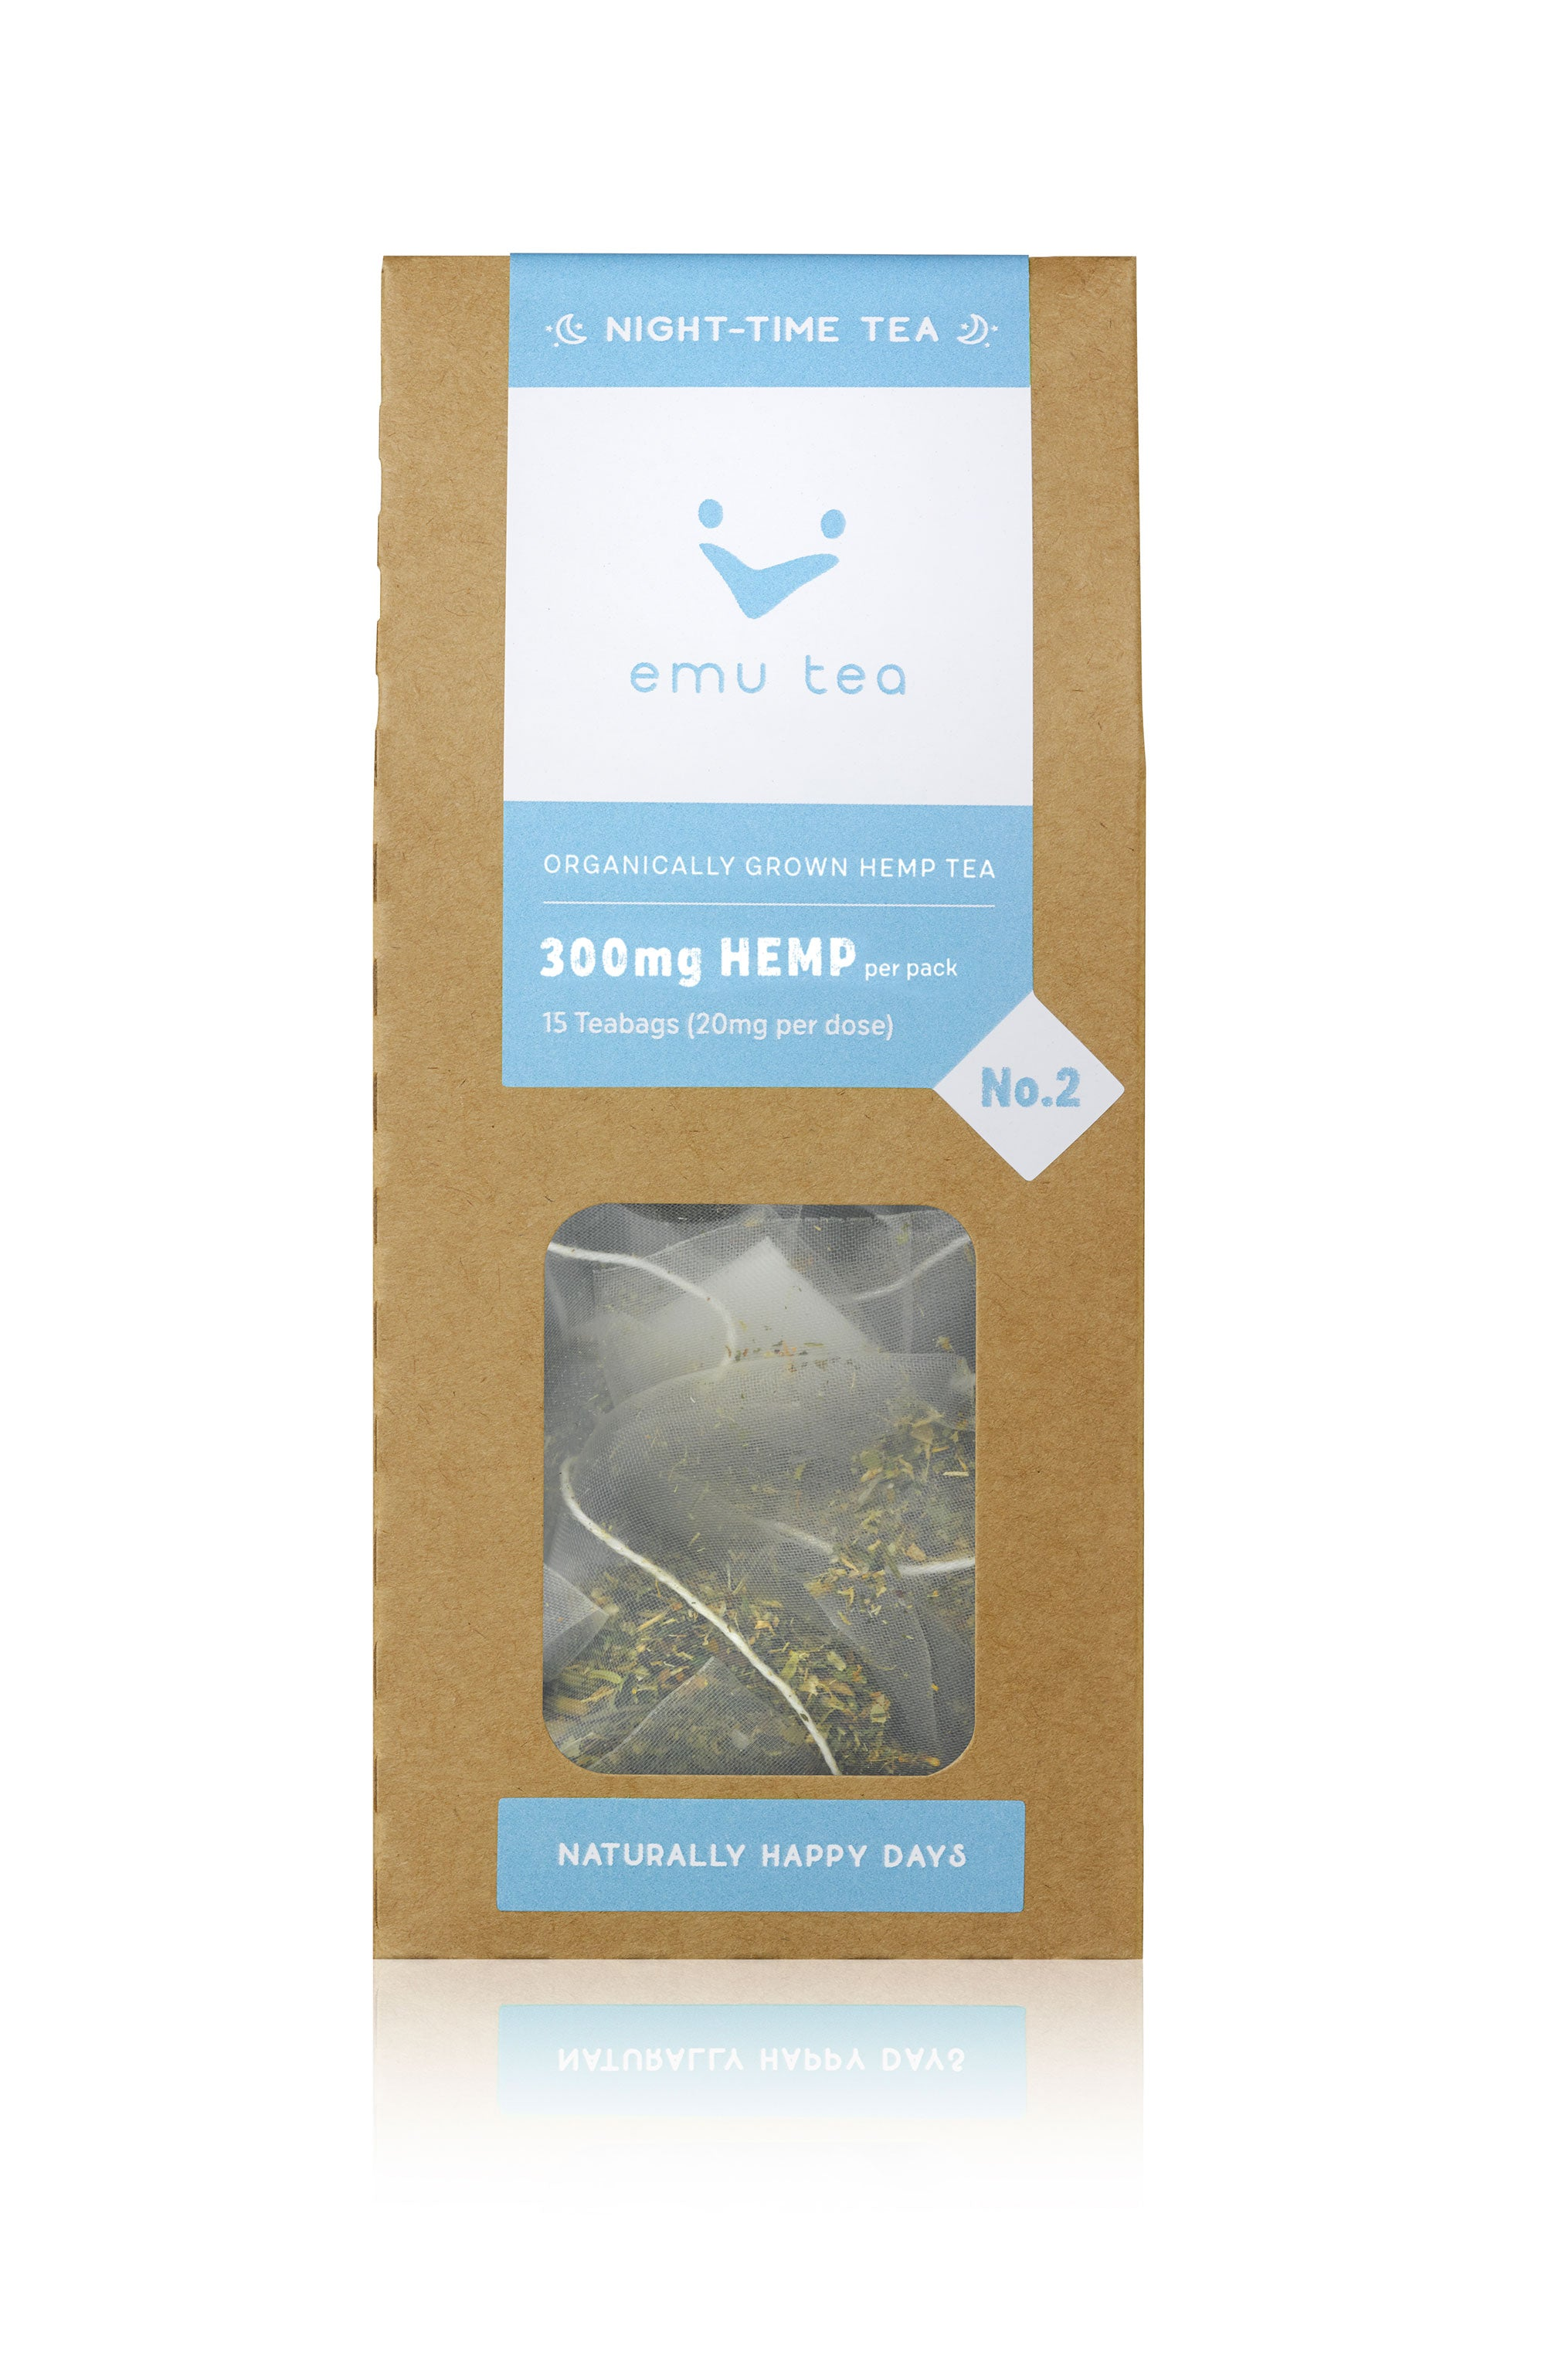 Night-time Tea - 300mg CBD